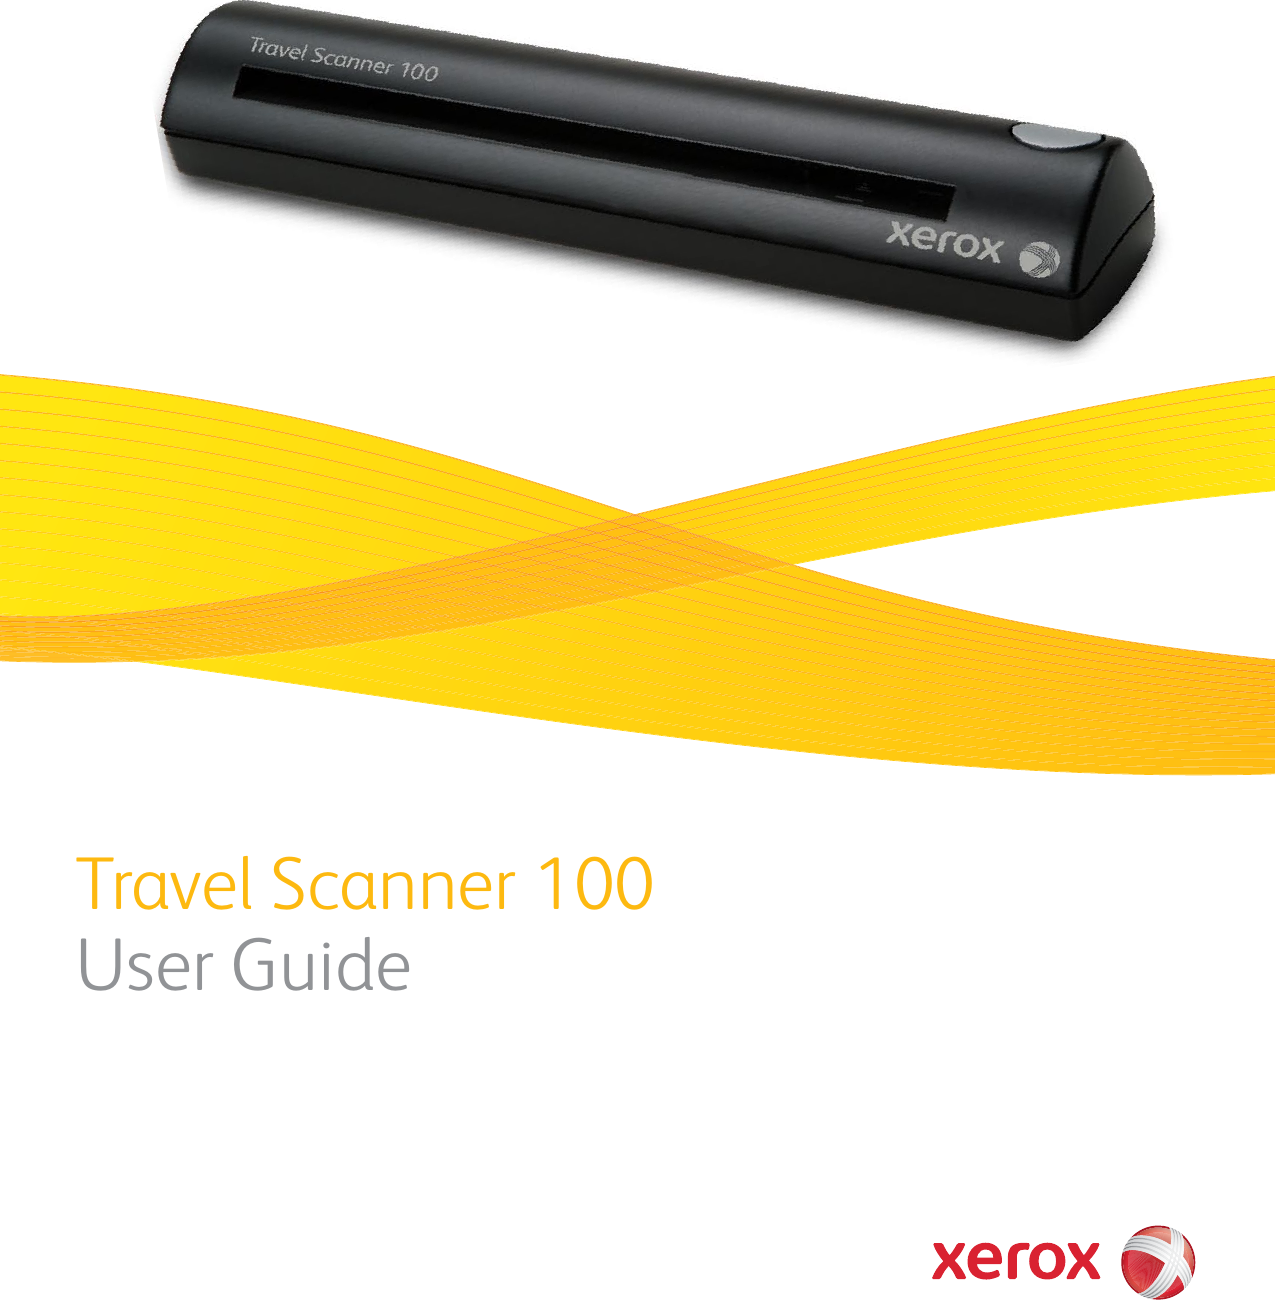 Xerox Travel Scanner 100 User's Guide If Not Then TS100 Guide OT4 EN